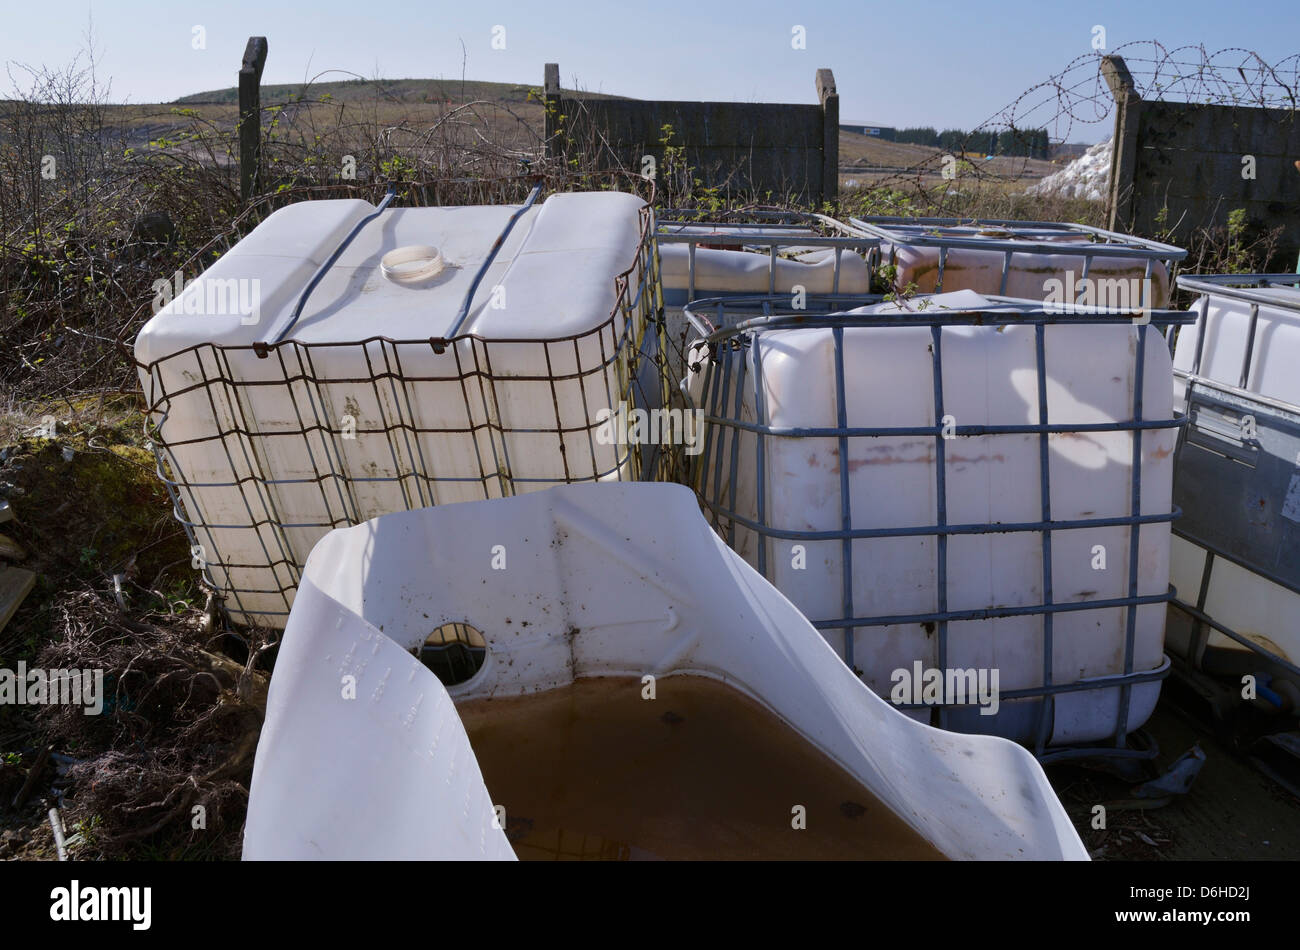 Abandoned chemical containers - Stock Image